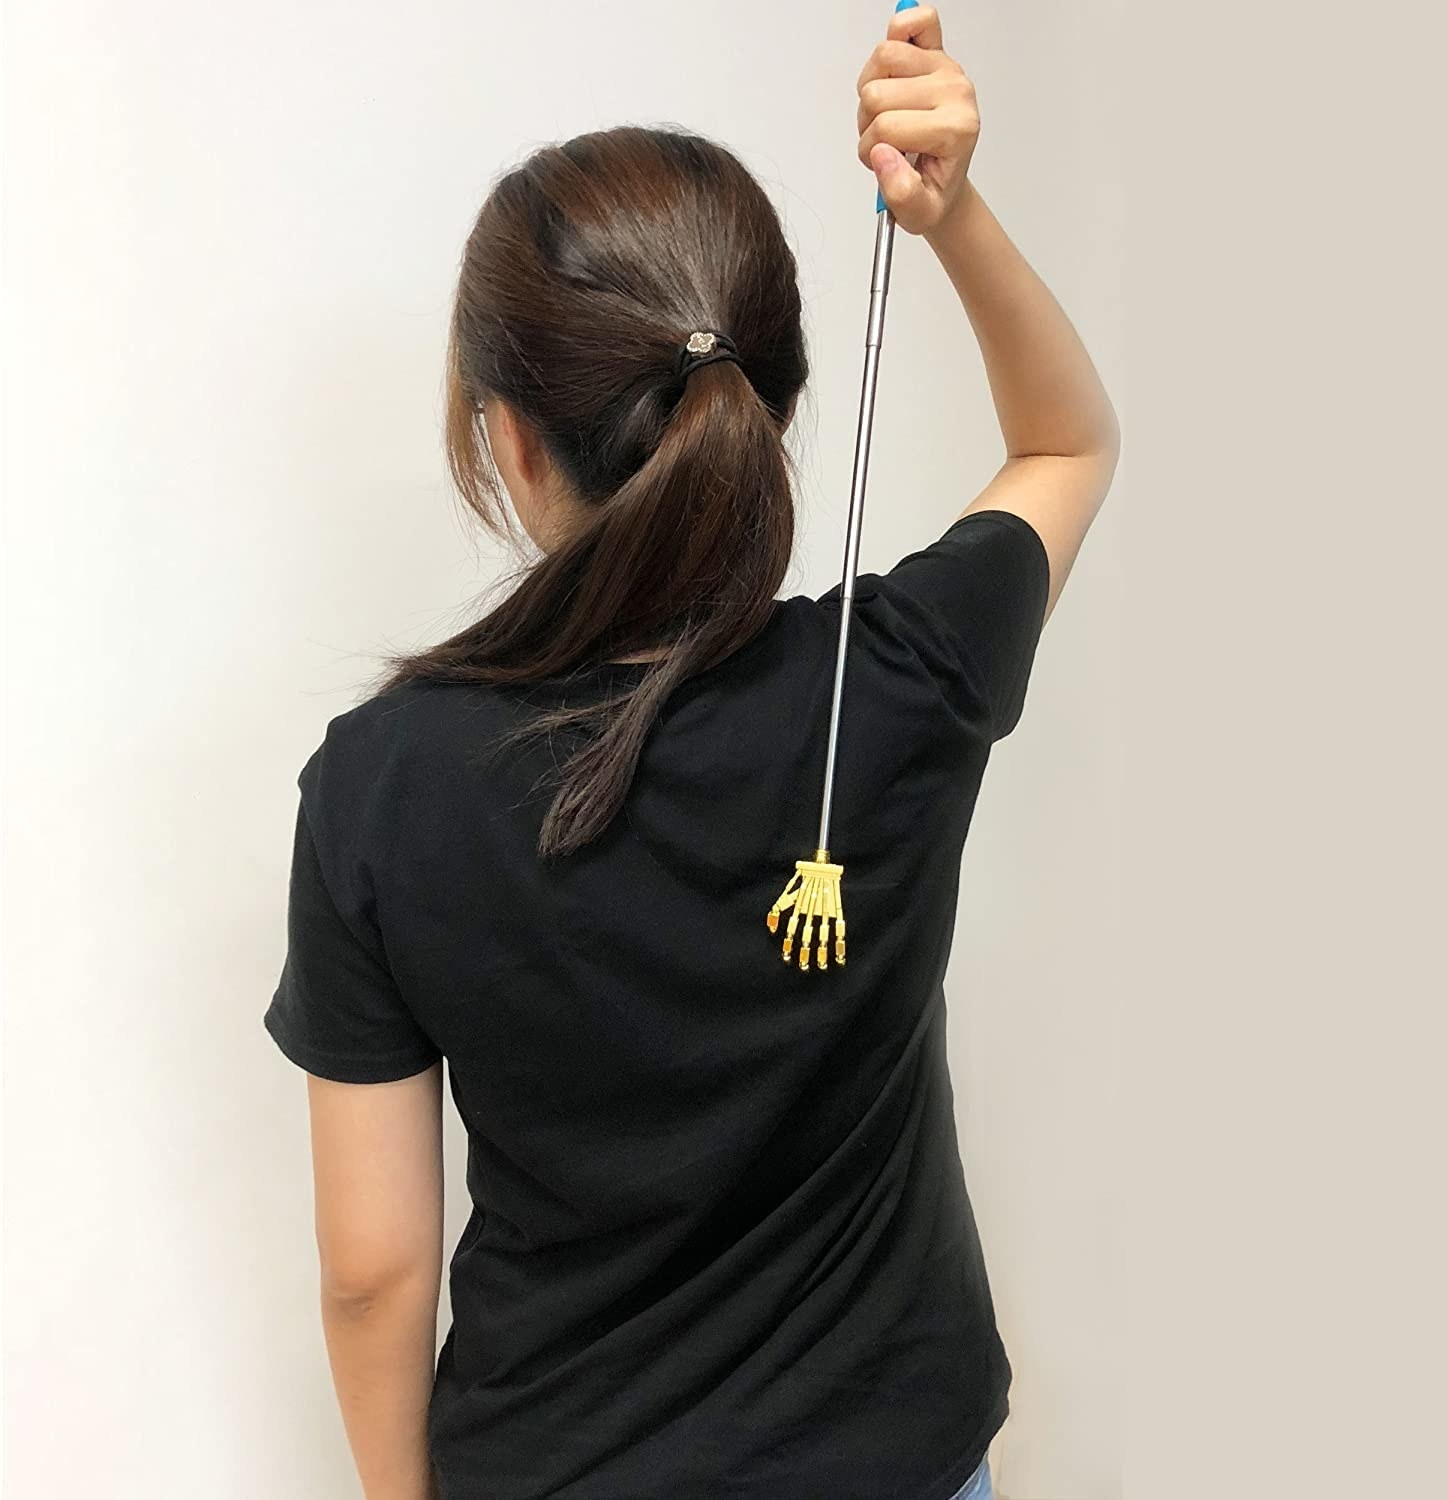 A person using the back scratcher while wearing a tee